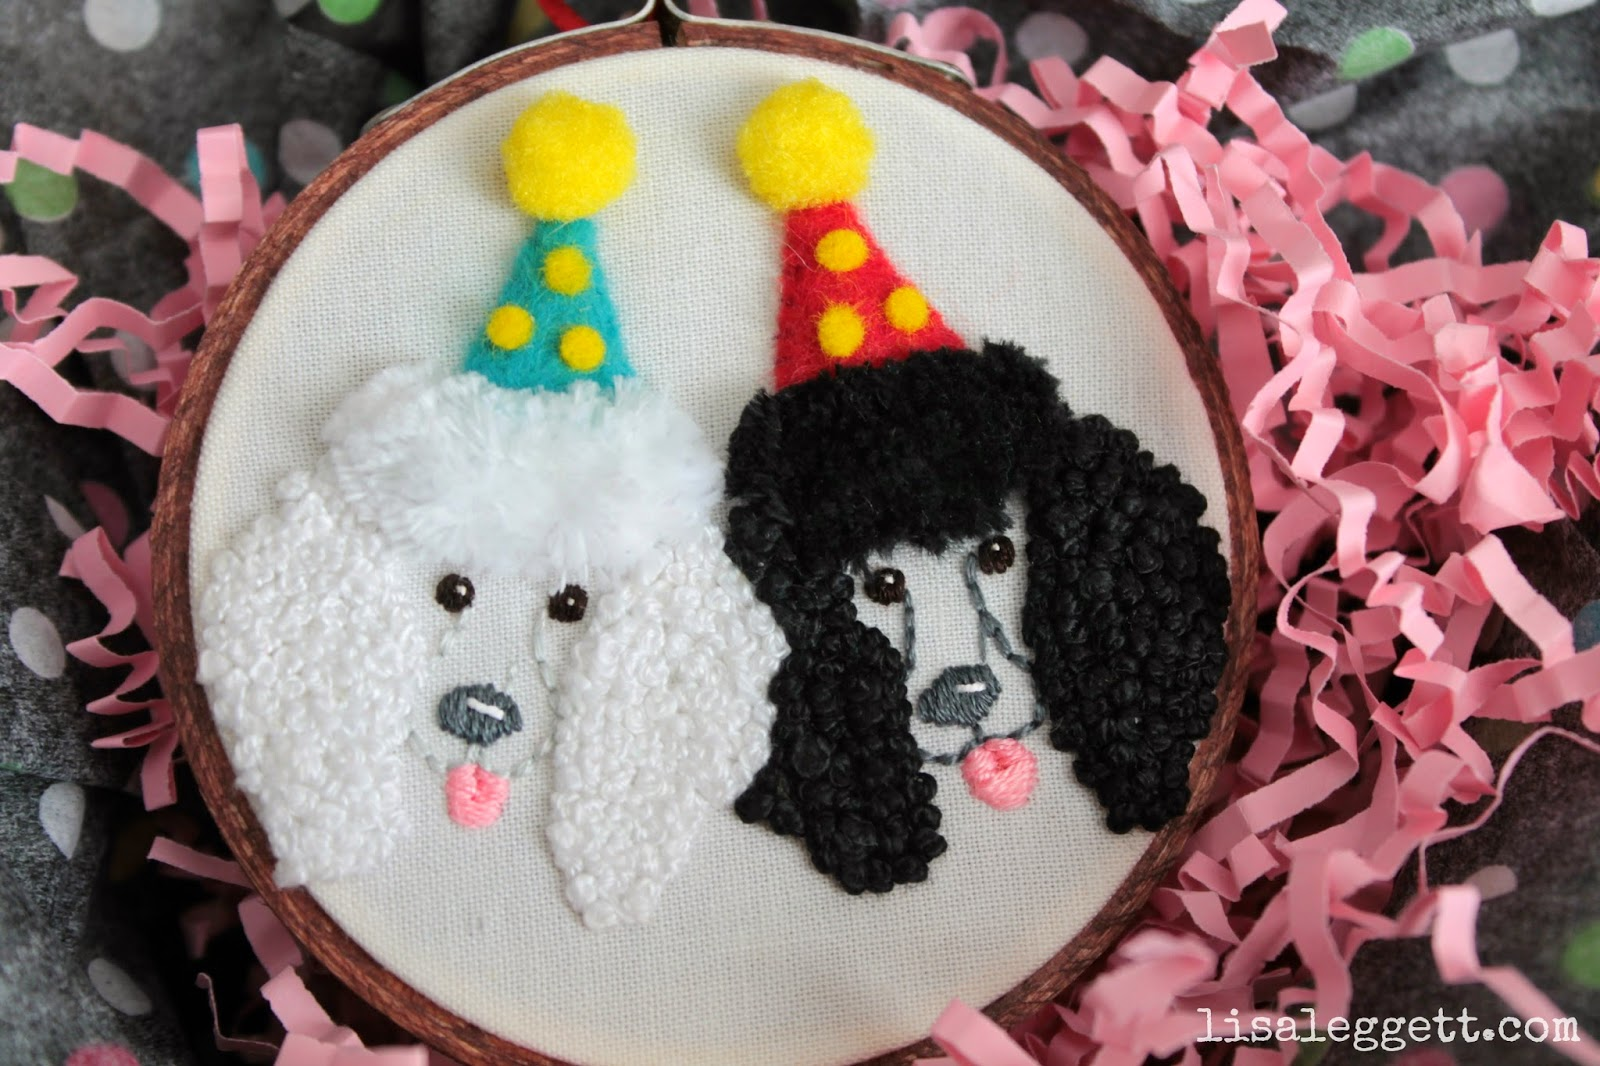 Party Poodles by Lisa Leggett